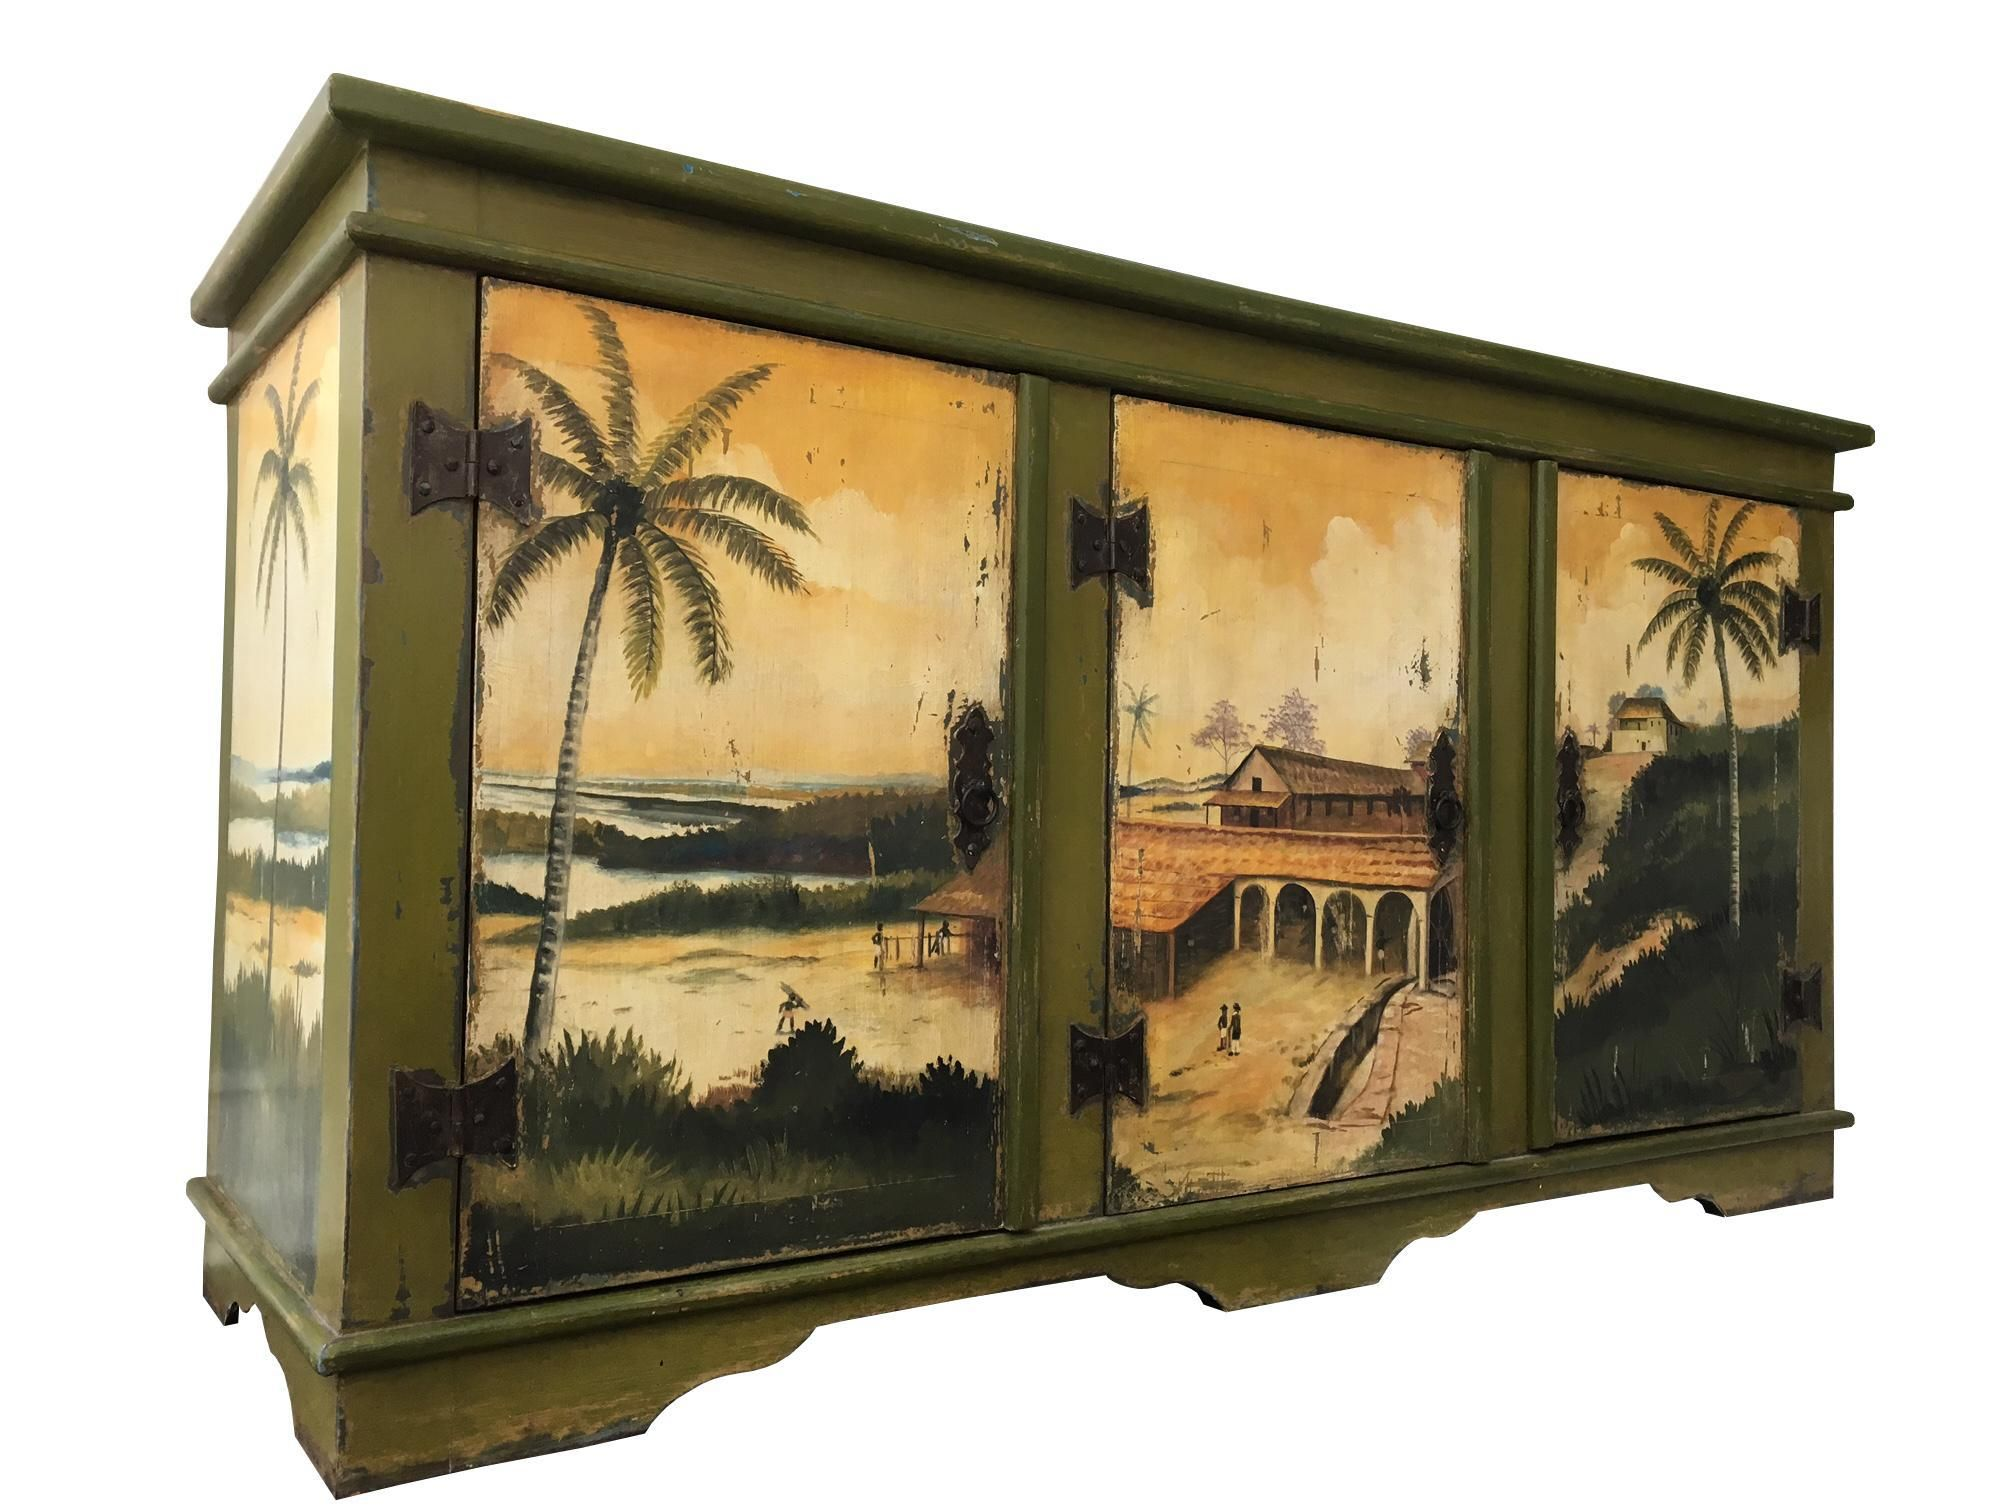 Artiero Brazil Tropical Palm Tree Hand Painted Credenza Cabinet Chairish